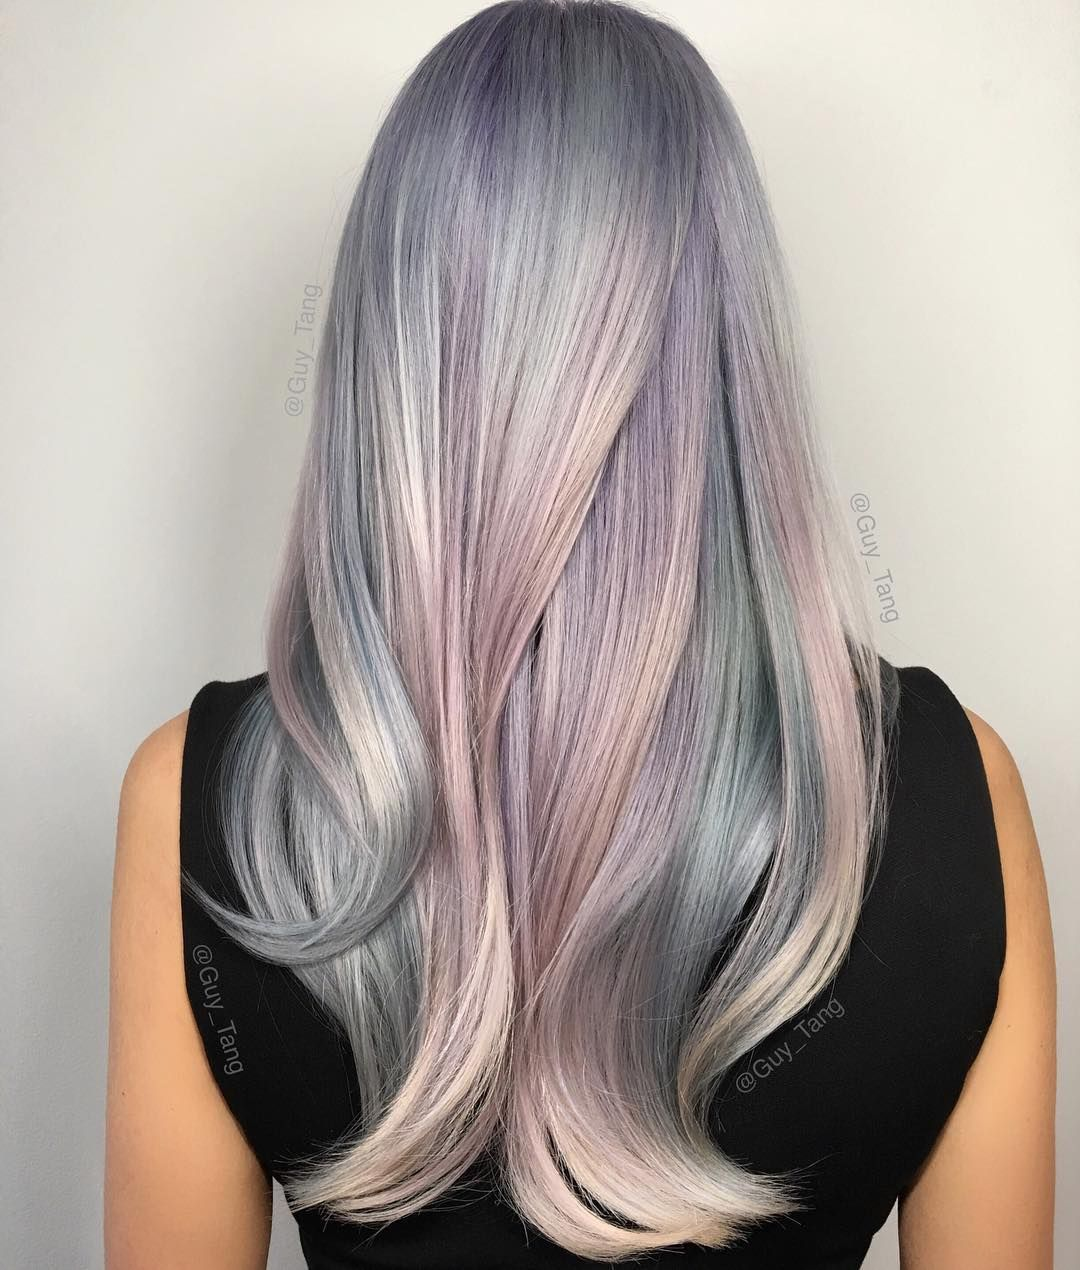 16 Cotton Candy Hair Color Ideas So Sweet, You Mig